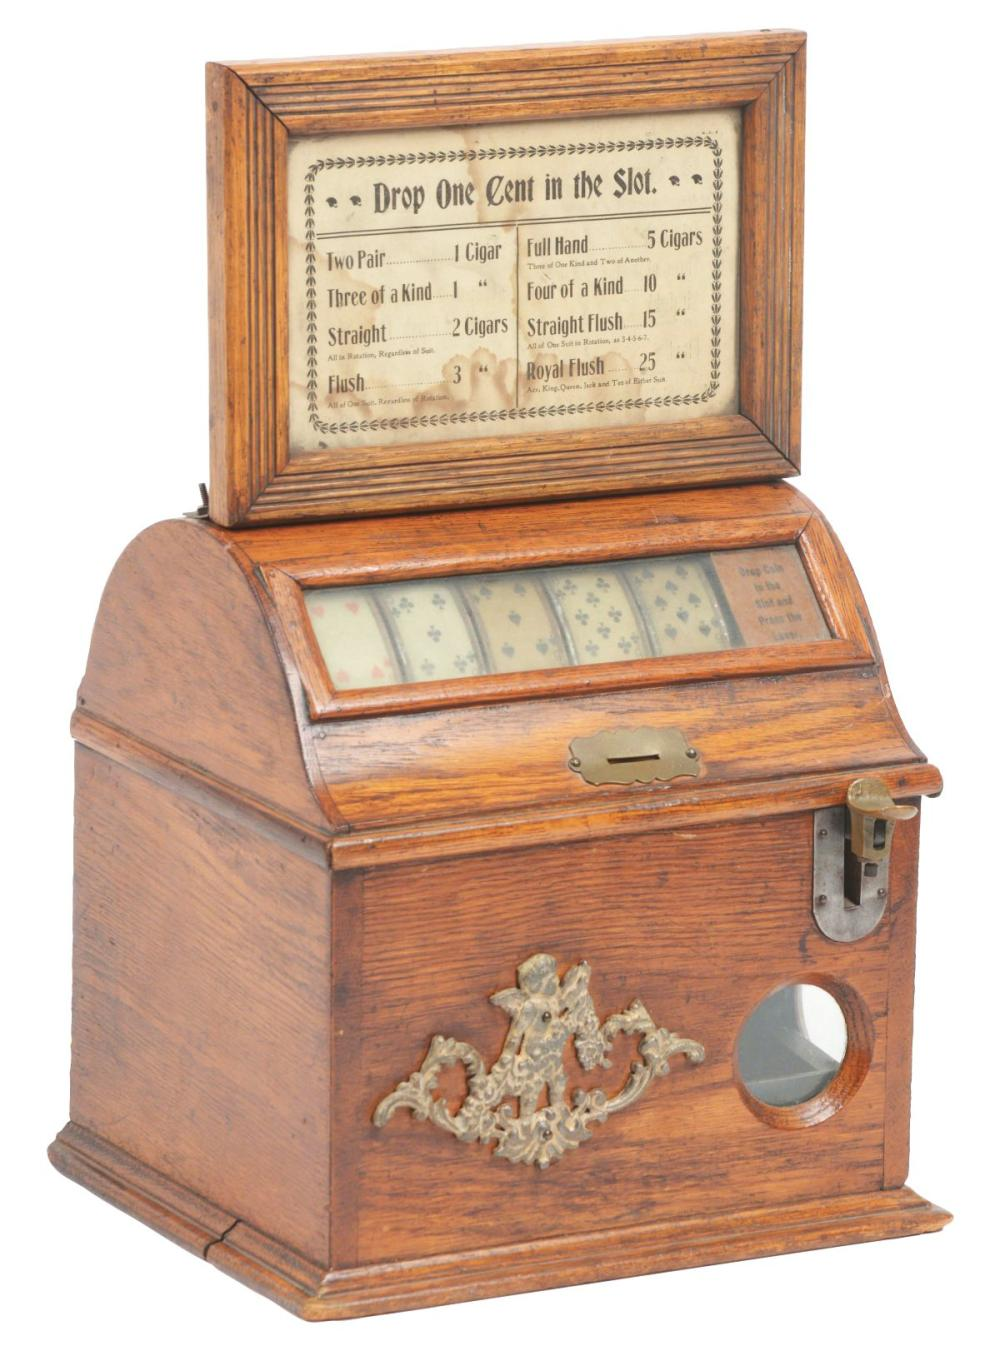 1¢ LEO CANDA LITTLE PERFECTION CIGAR TRADE STIMULATOR.